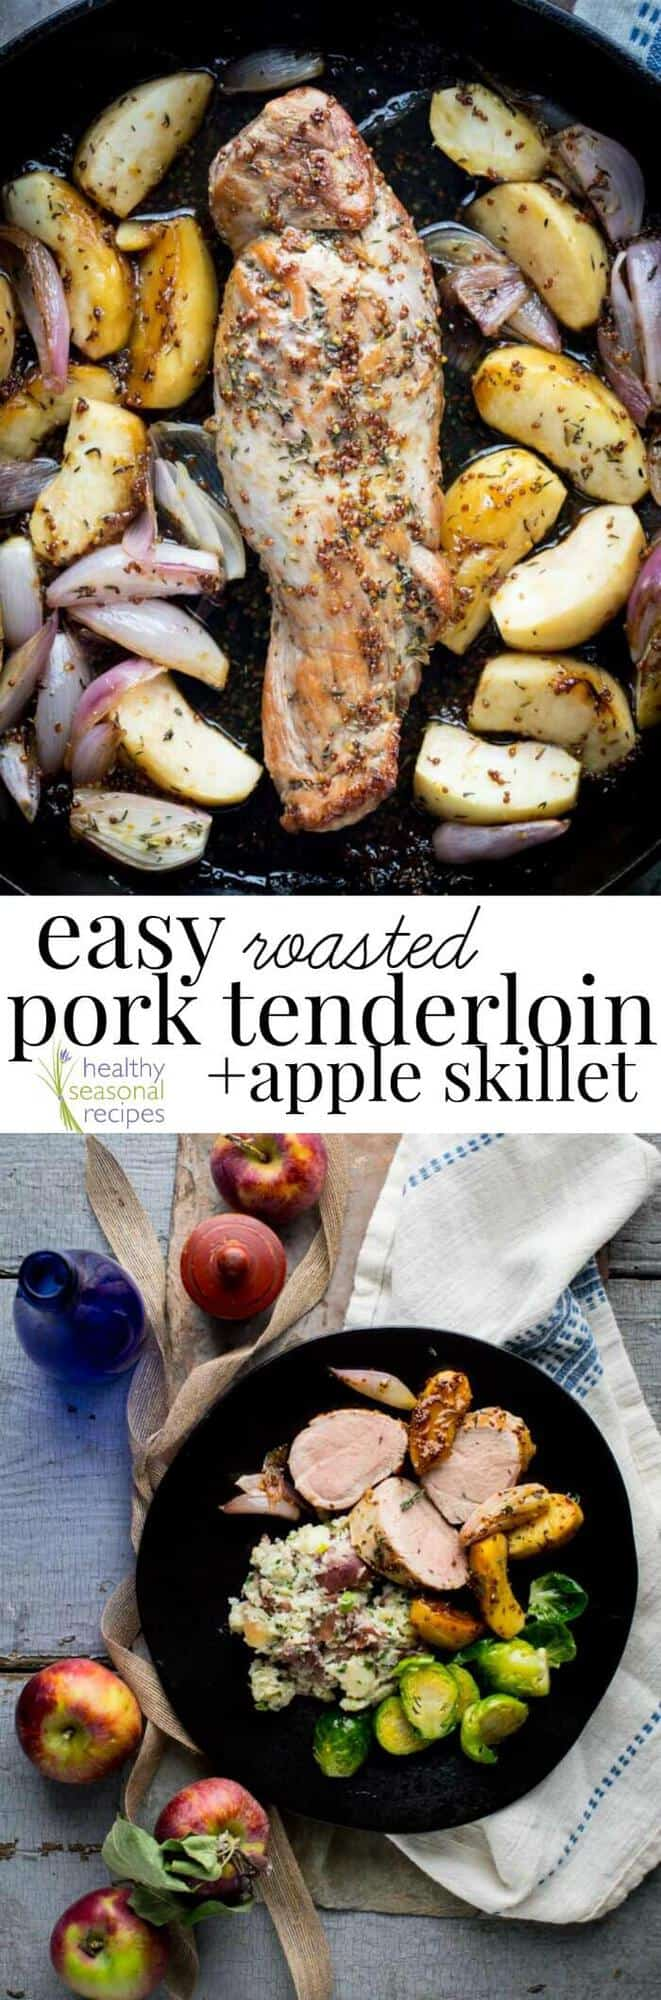 Easy Roasted Pork Tenderloin and Apple Skillet with Maple Mustard sauce and shallots. A grain-free and gluten-free one pan dish for entertaining or a weeknight! #porktenderloin #easy #onepan #entertaining #holiday #apples #glutenfree #pork #roastedpork